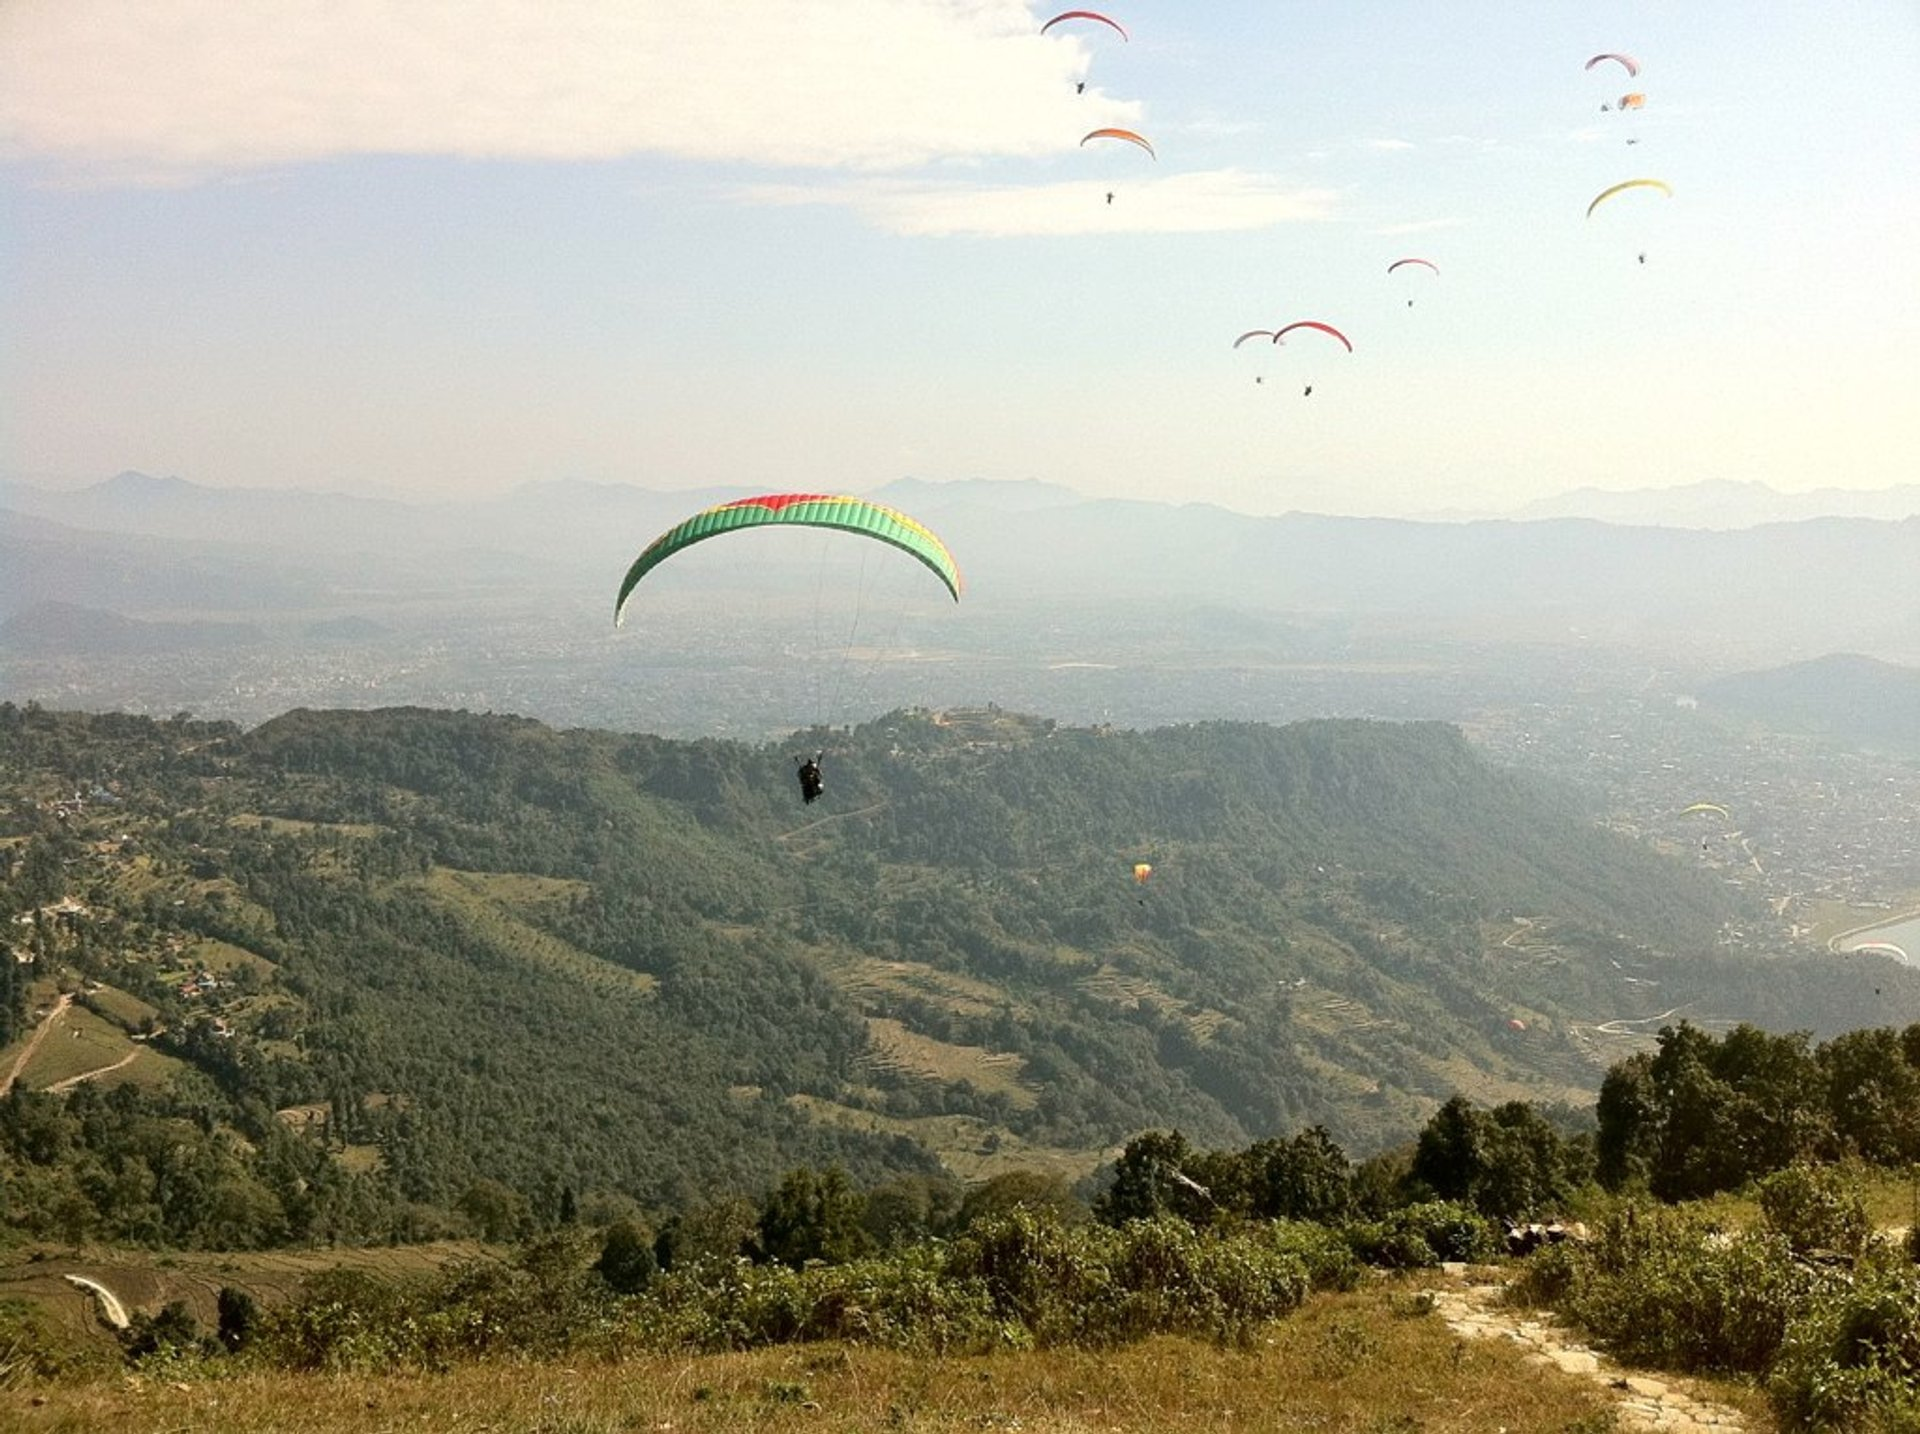 Paragliding over the Pokhara Landscapes in Nepal 2019 - Best Time